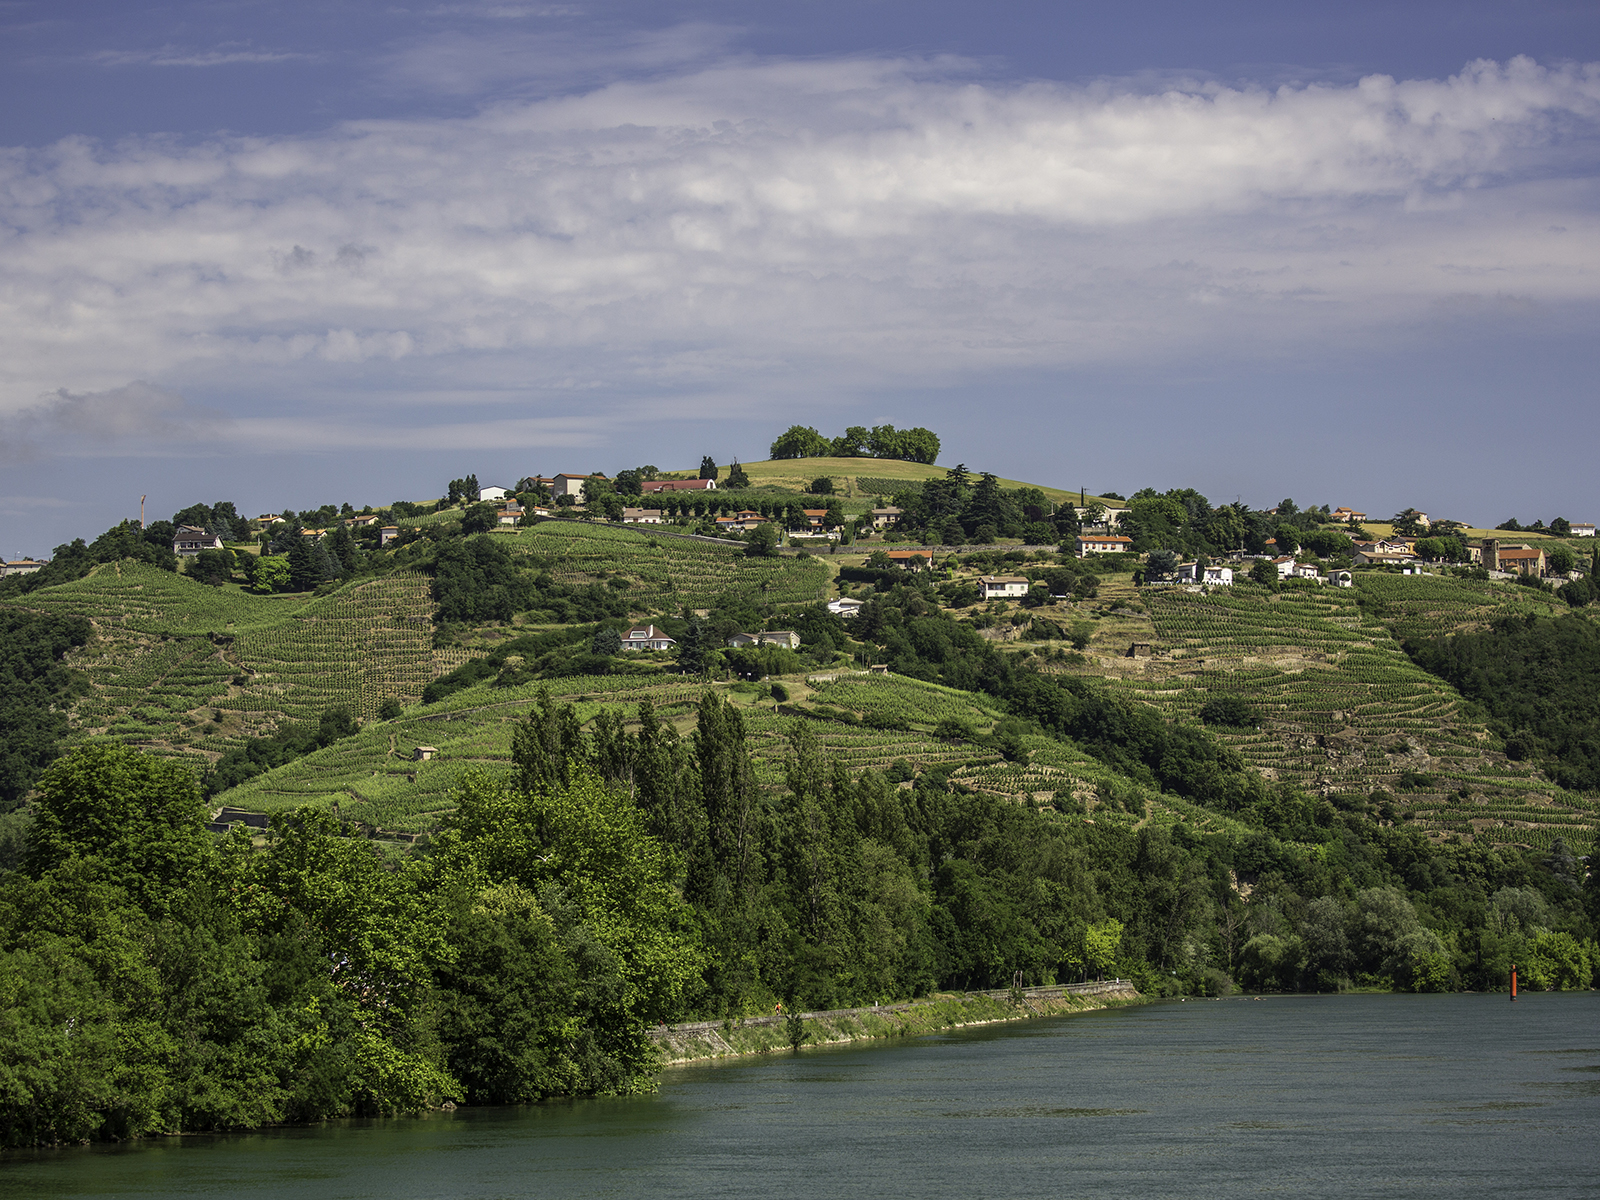 Rhone River and Vineyards in city of Condrieu, Rhone-Alpes, France.